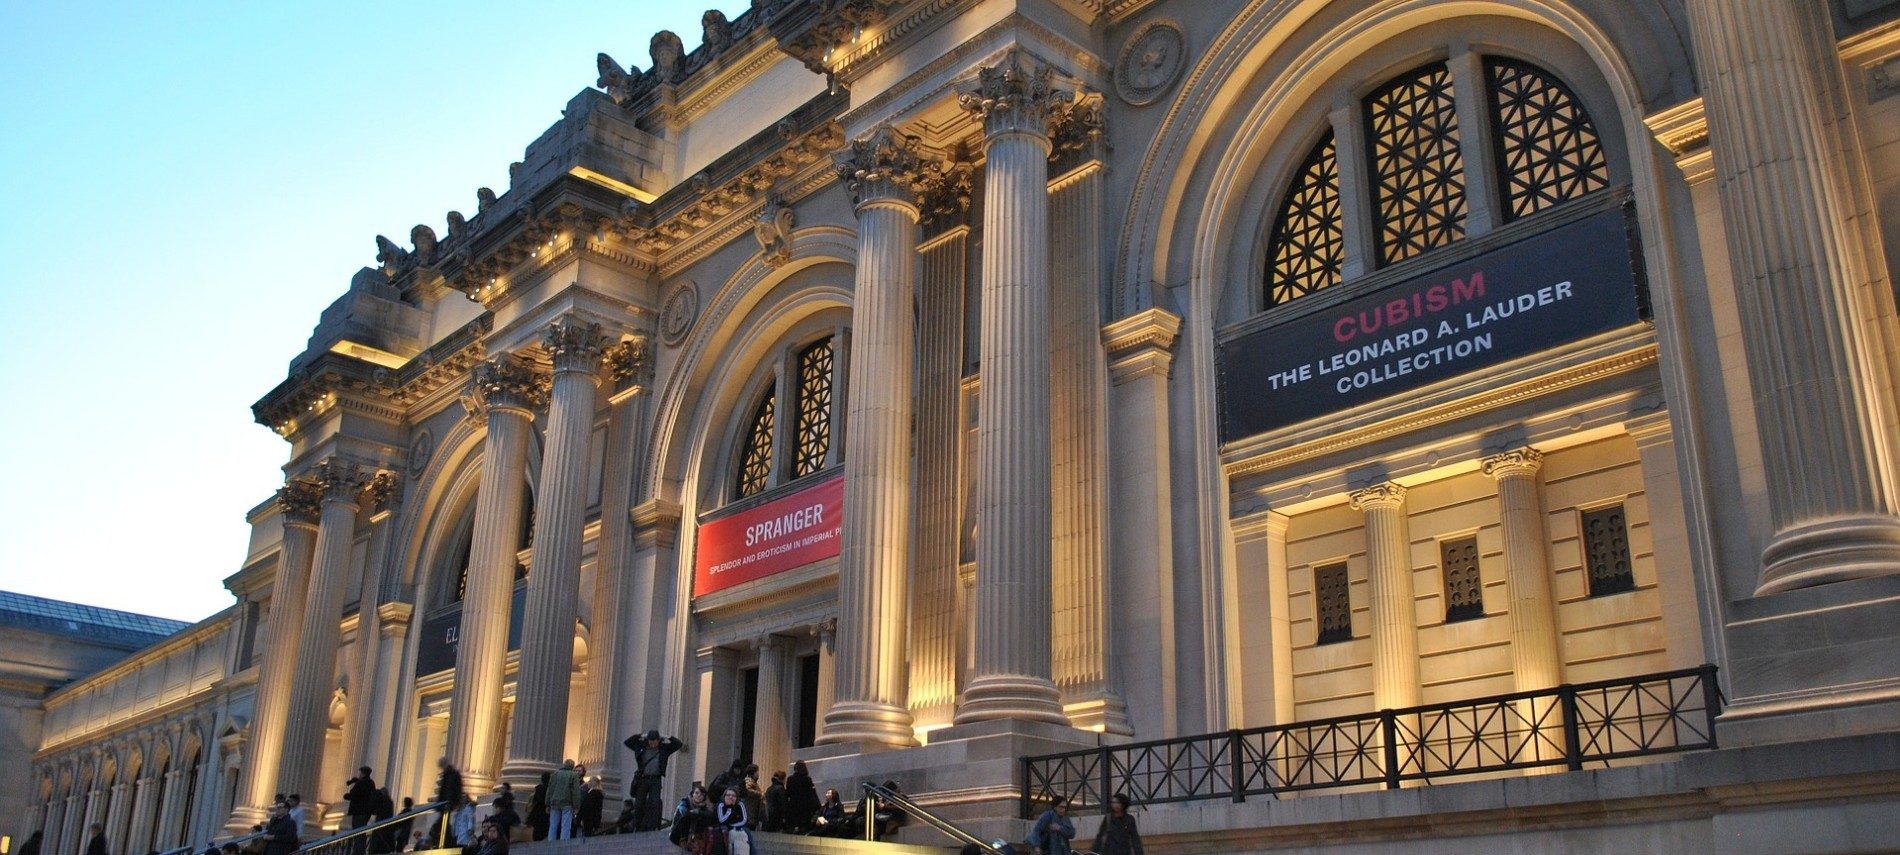 Front facade of large museum of art with tall columns, arches, and wide steps with people mingling